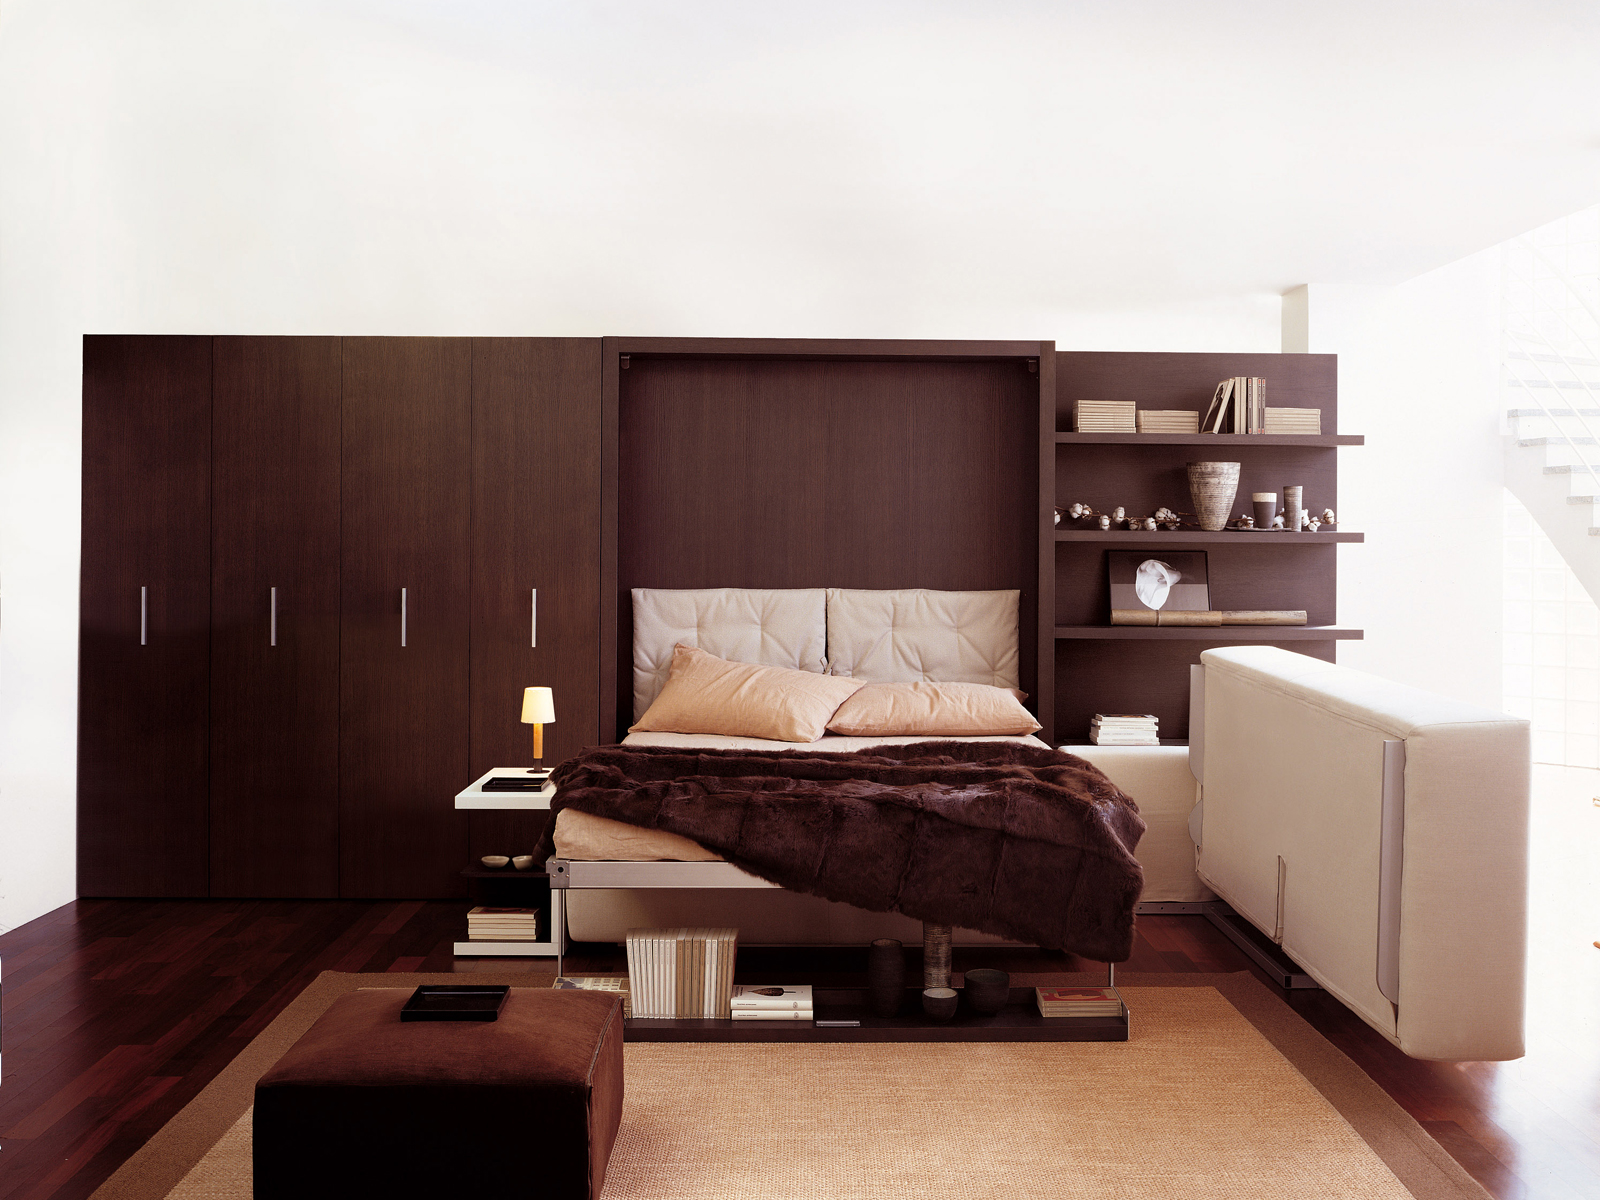 Mueble modular de pared con cama abatible atoll 202 by - Mueble salon con cama abatible ...